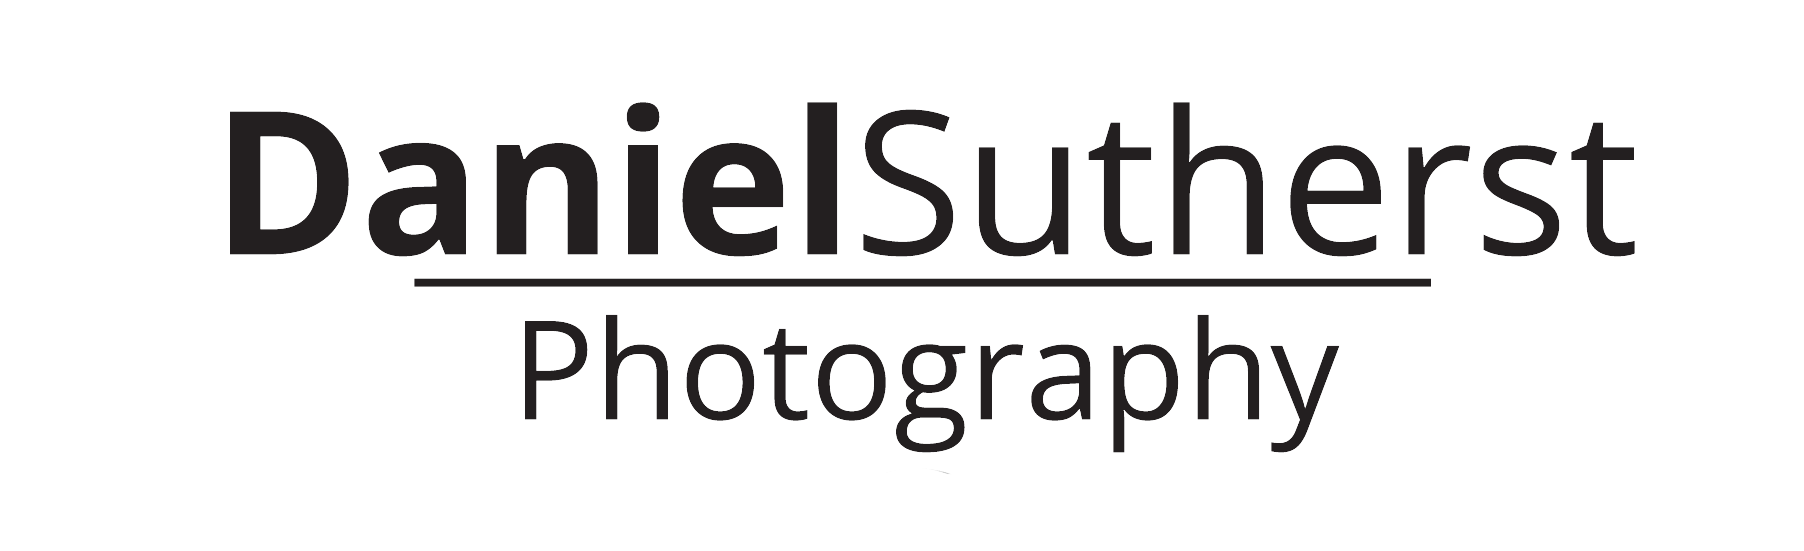 Daniel Sutherst Photography